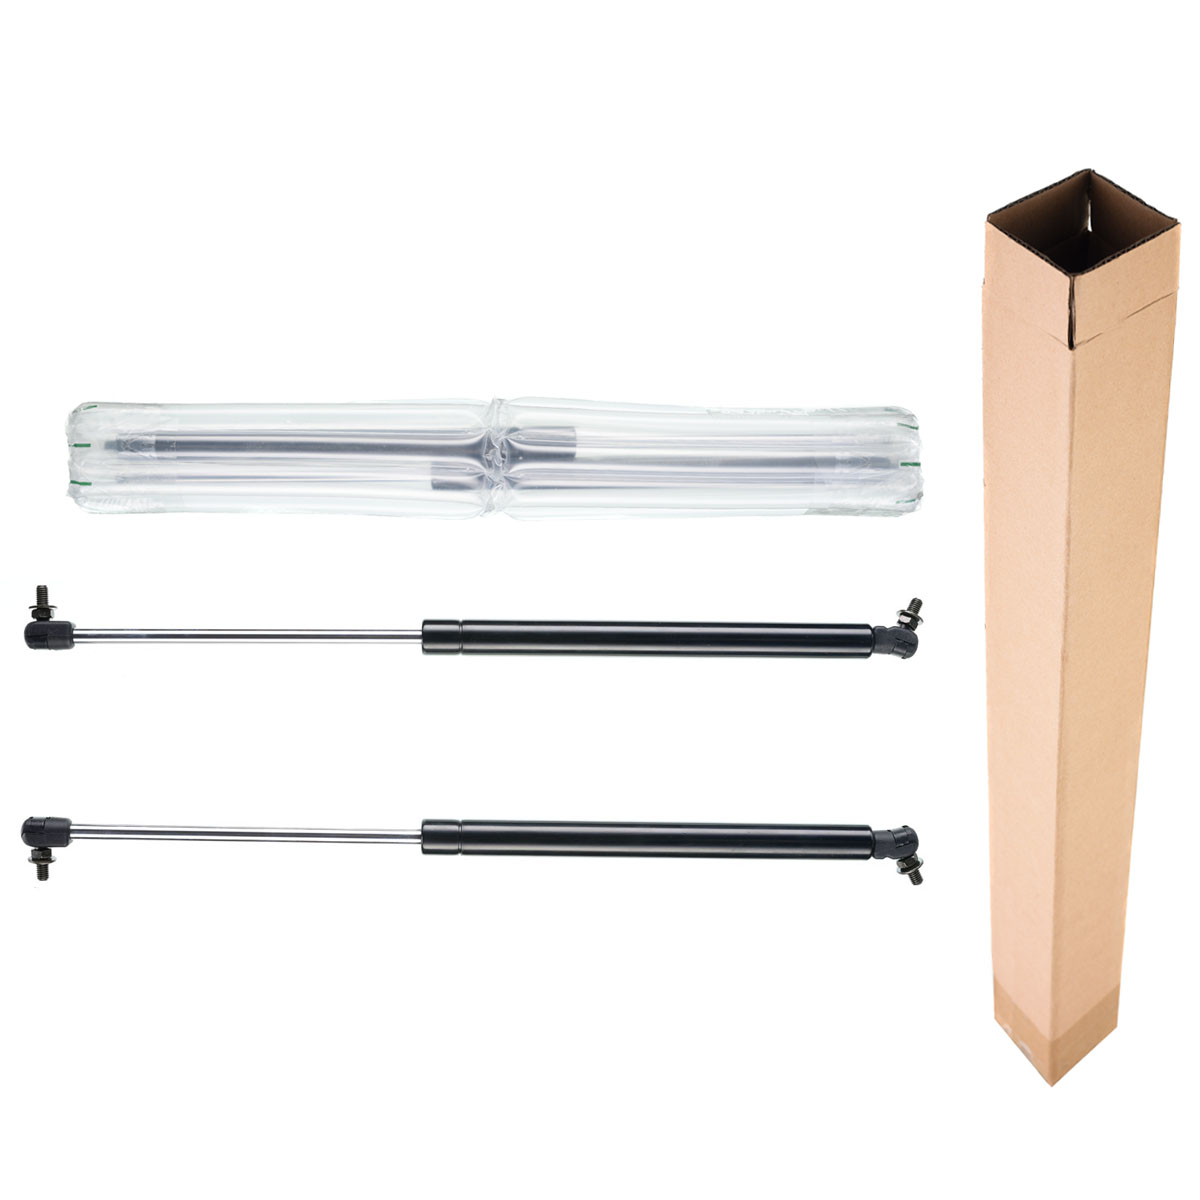 small resolution of set of 2 brand new hood bonnet lift supports shock gas struts for lexus gs300 1993 1994 1995 1996 1997 5344039085 4381